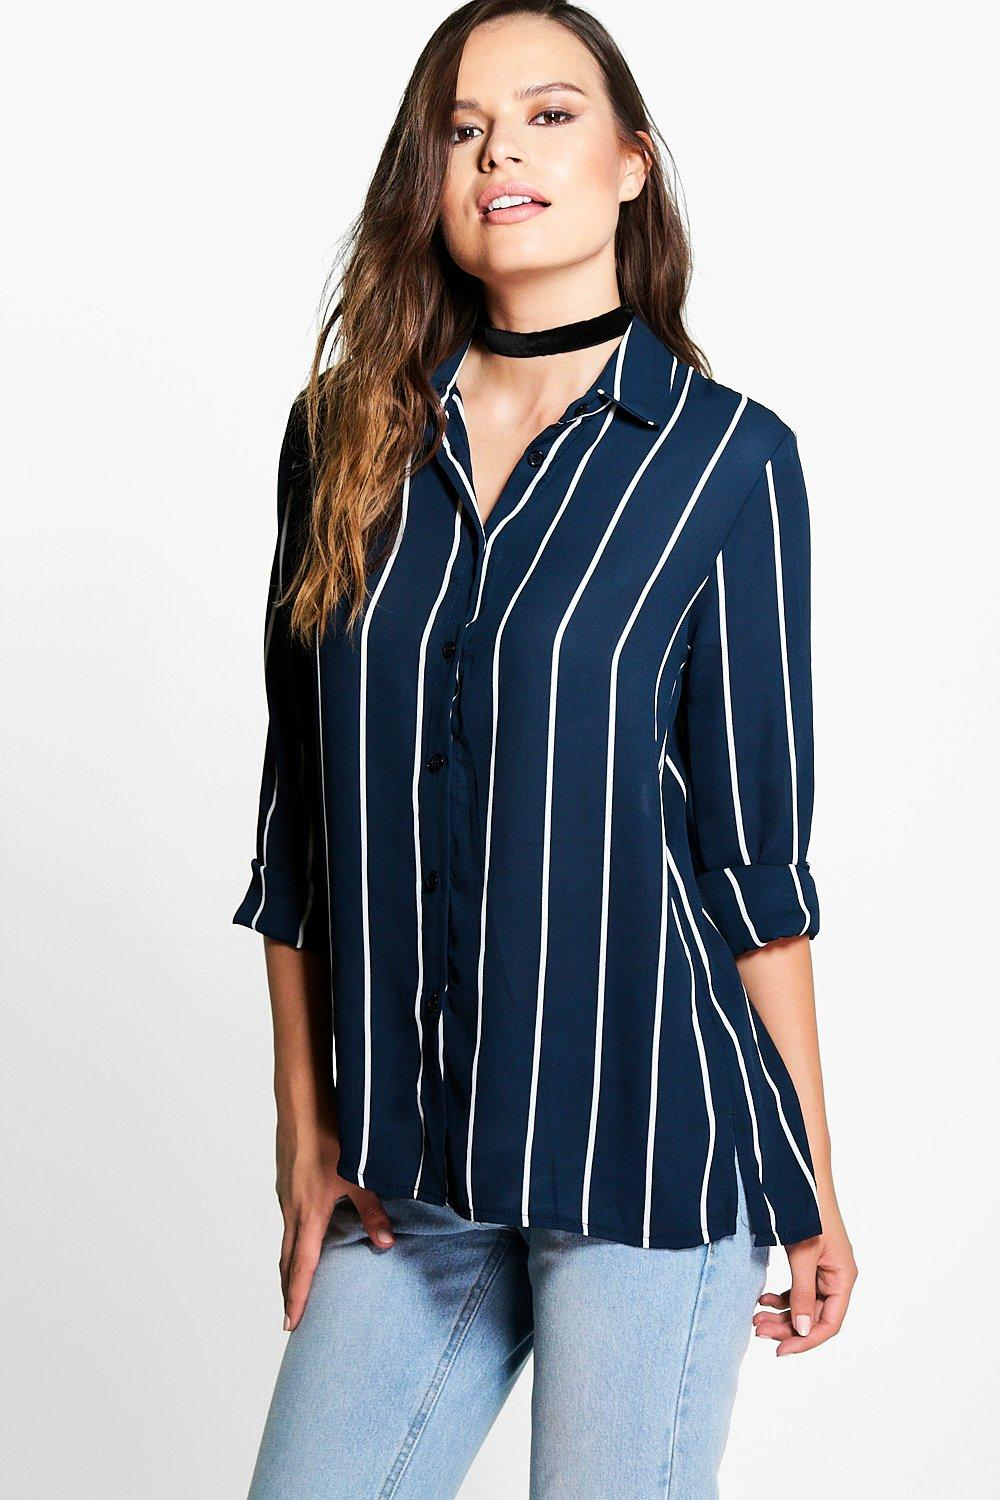 Marcelle Stripe Shirt